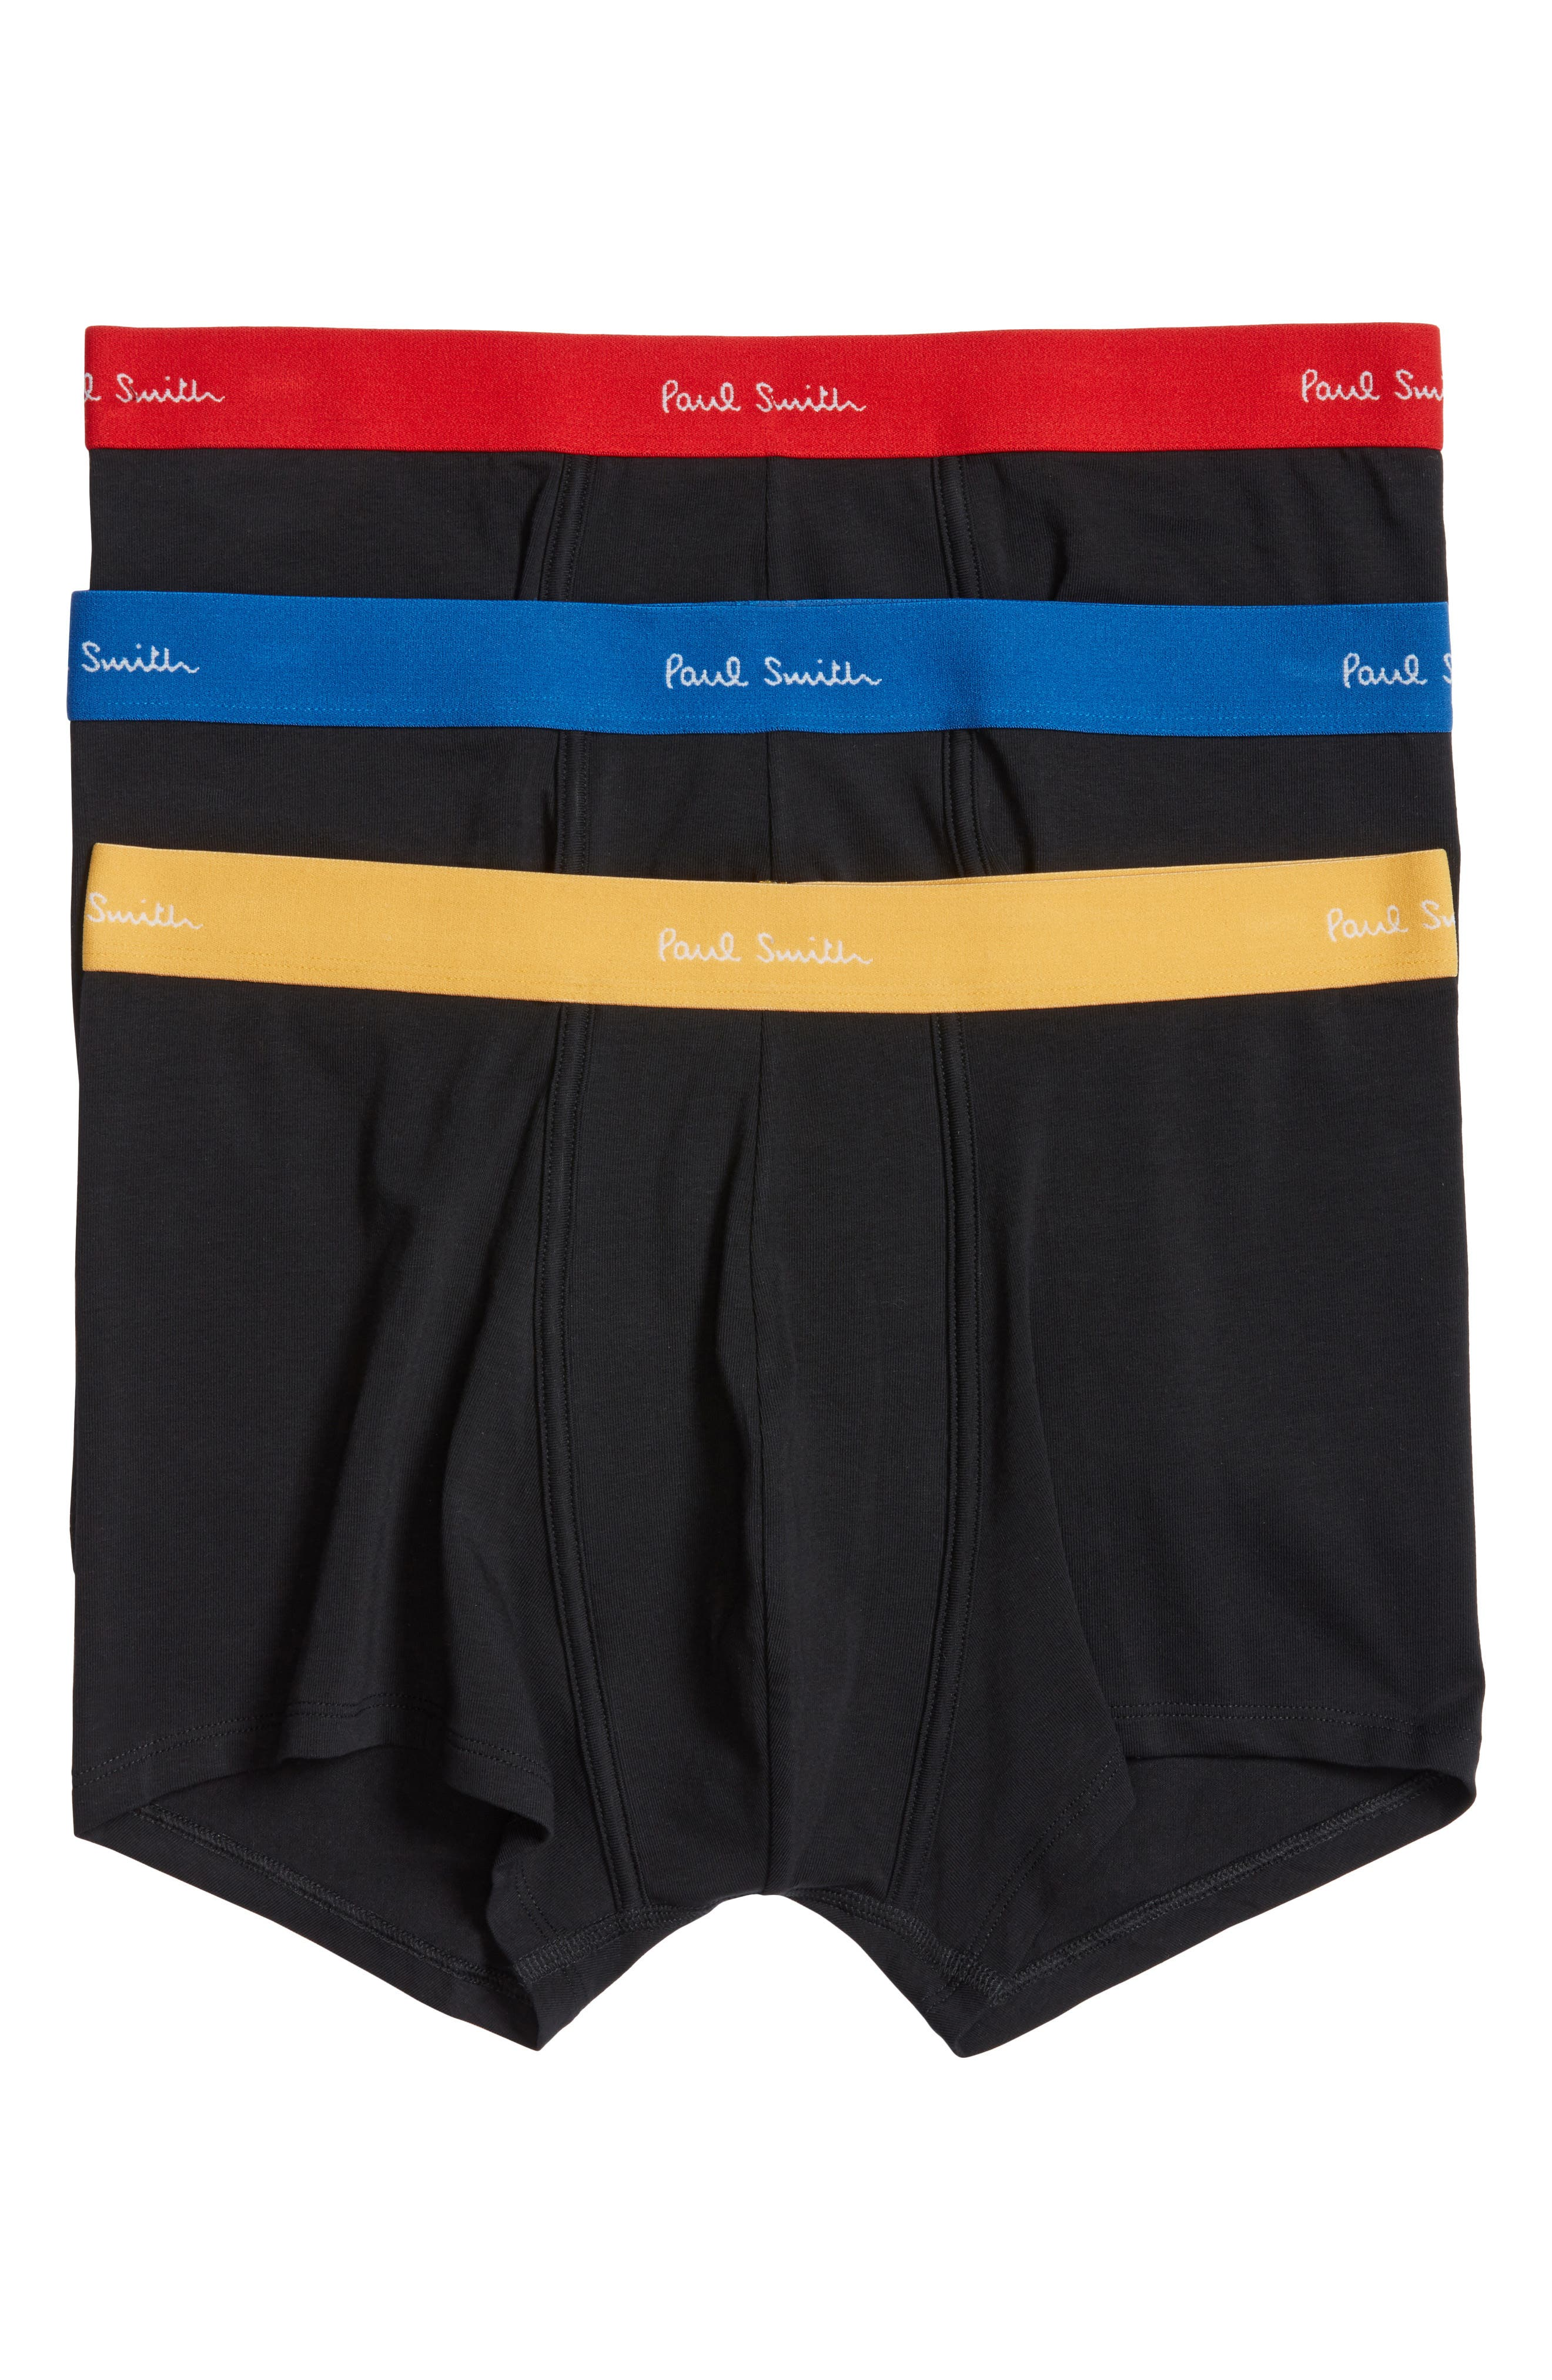 3-Pack Assorted Square Cut Trunks,                         Main,                         color, Black W/ Blue/ Orange/ Yellow